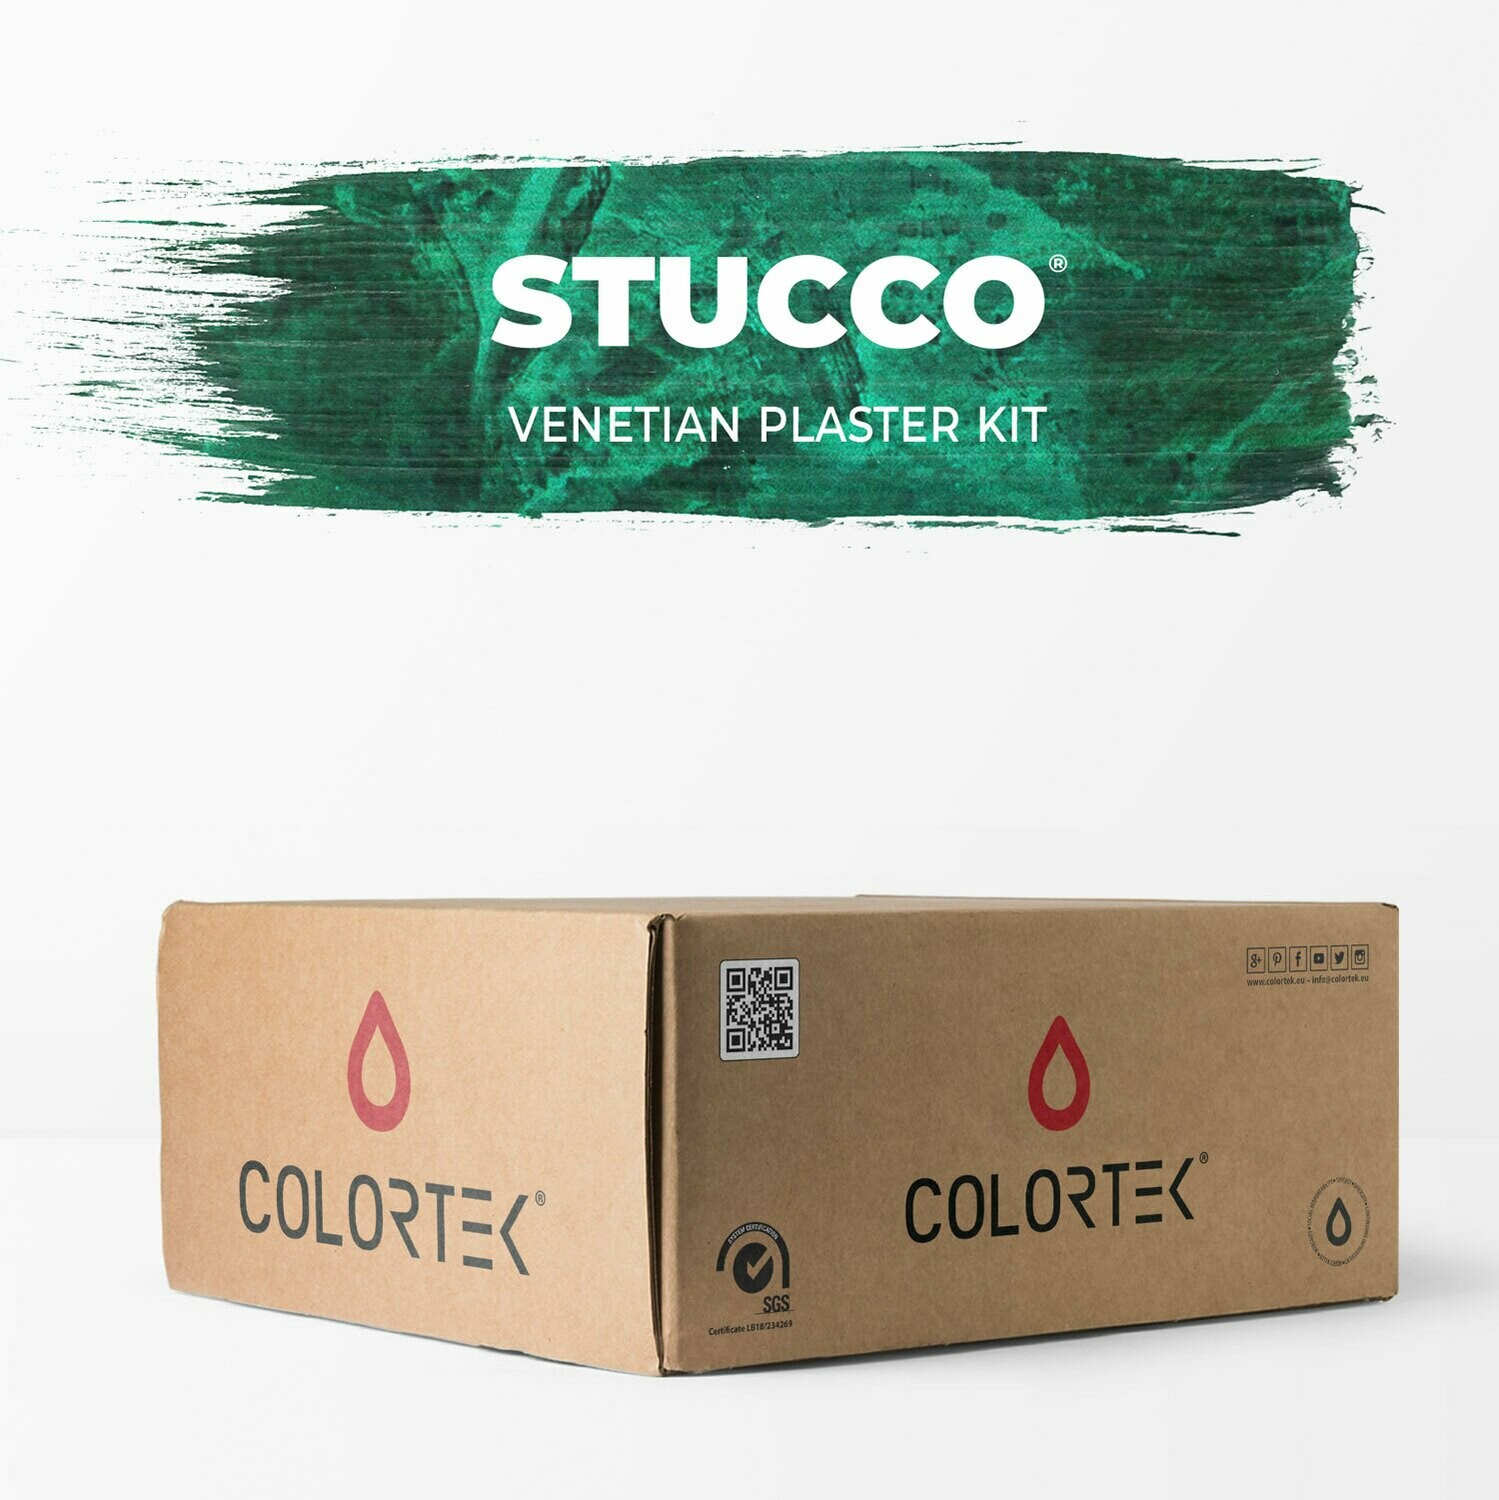 Stucco Venetian Plaster Paint kit for 12 sqm